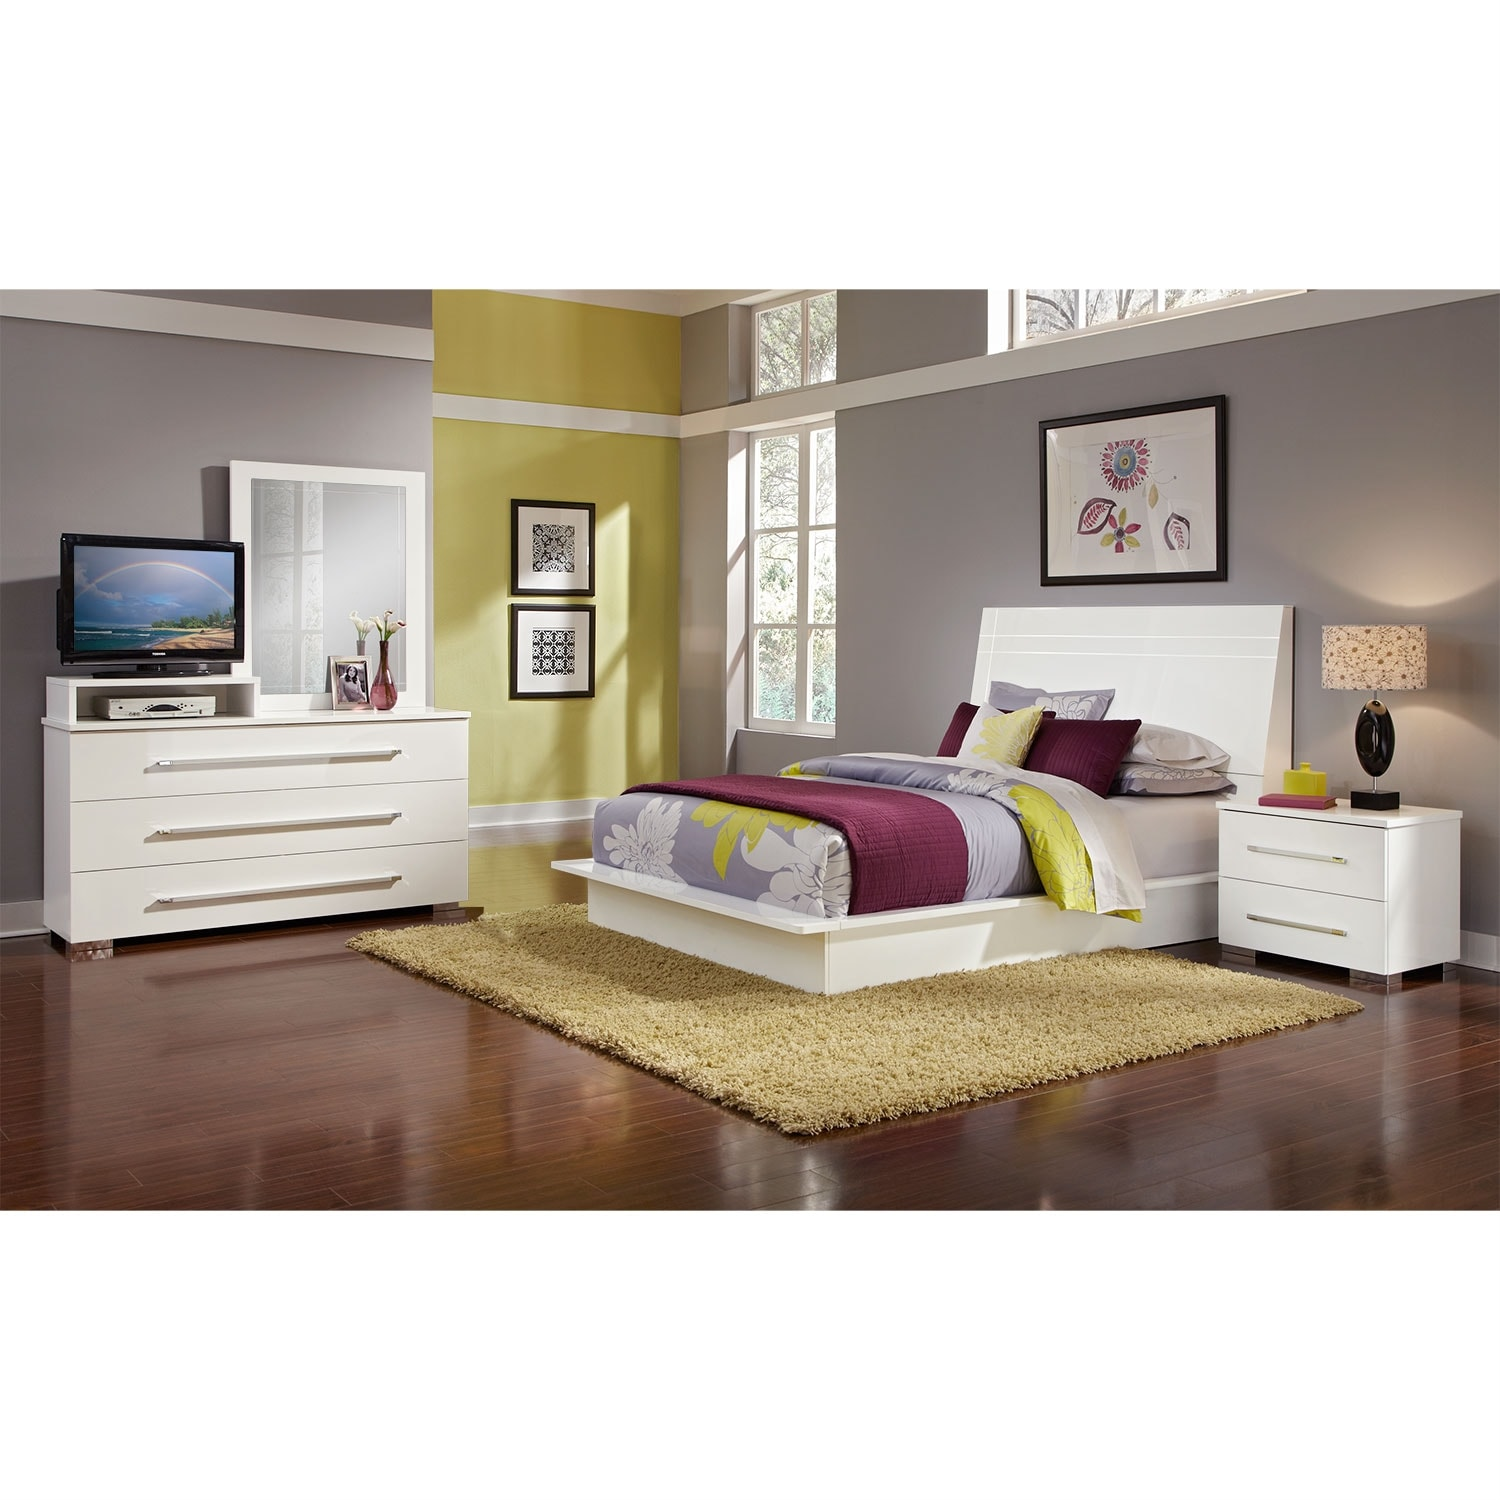 Dimora White II 6 Pc. Queen Bedroom  Value City Furniture